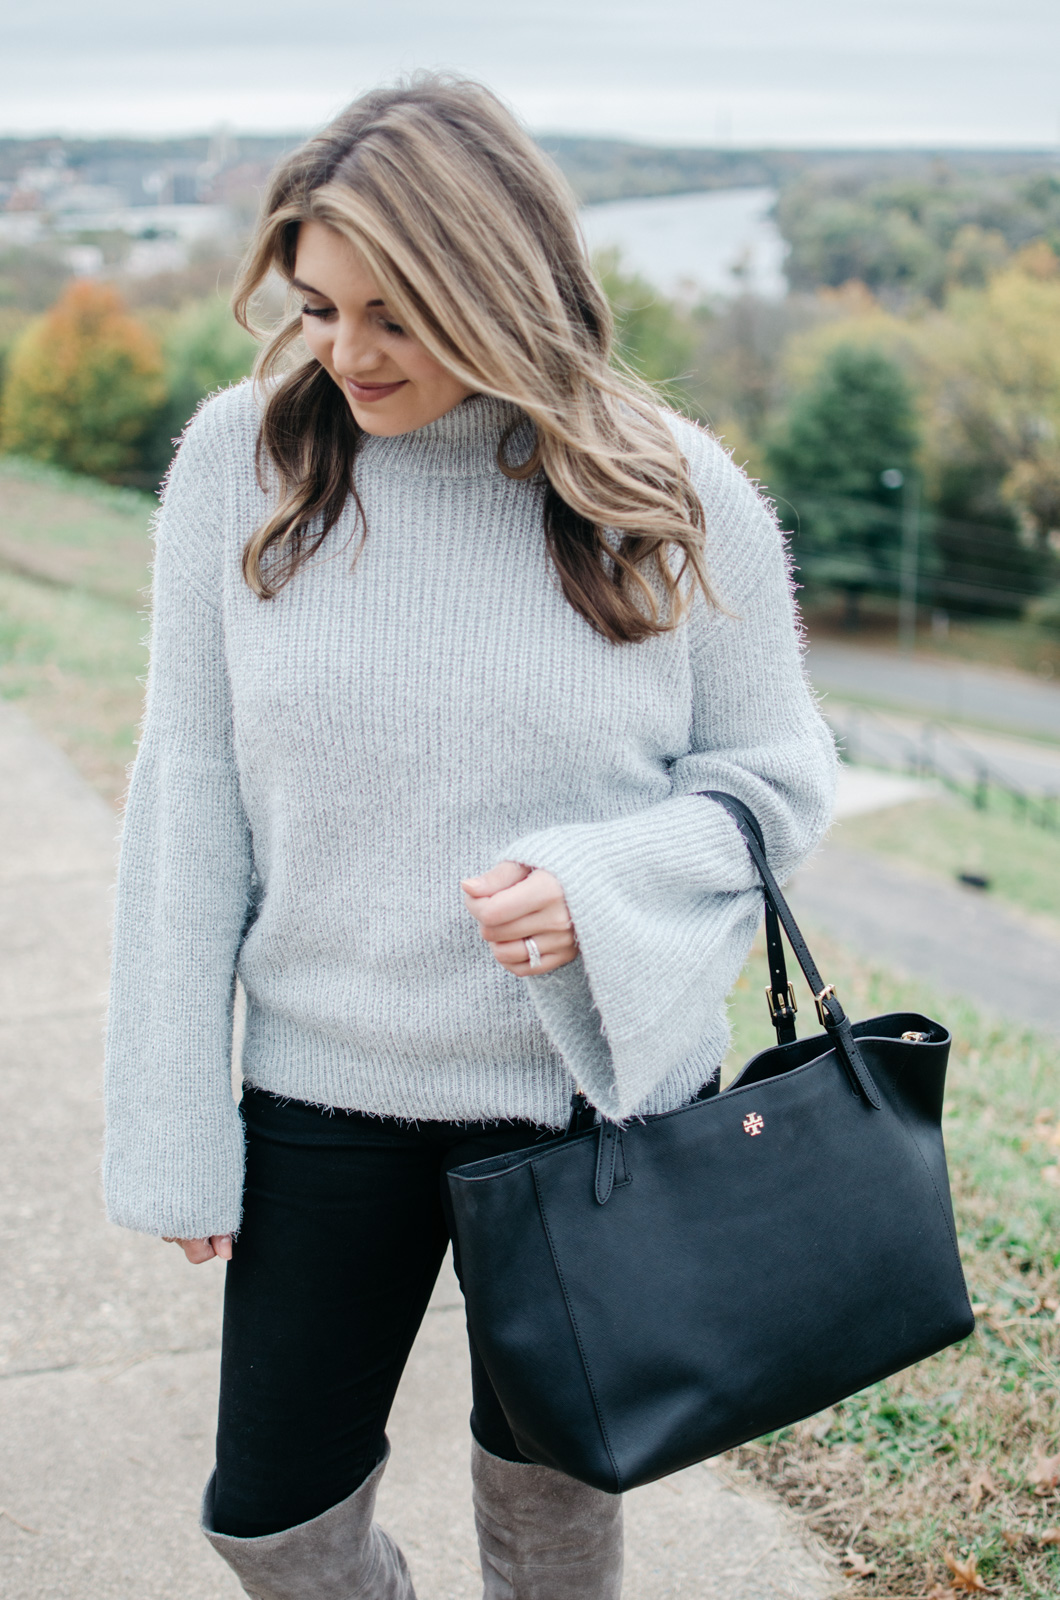 how wear bell sleeve sweater - bell sleeve sweater outfit | Get more Winter outfit ideas at bylaurenm.com!